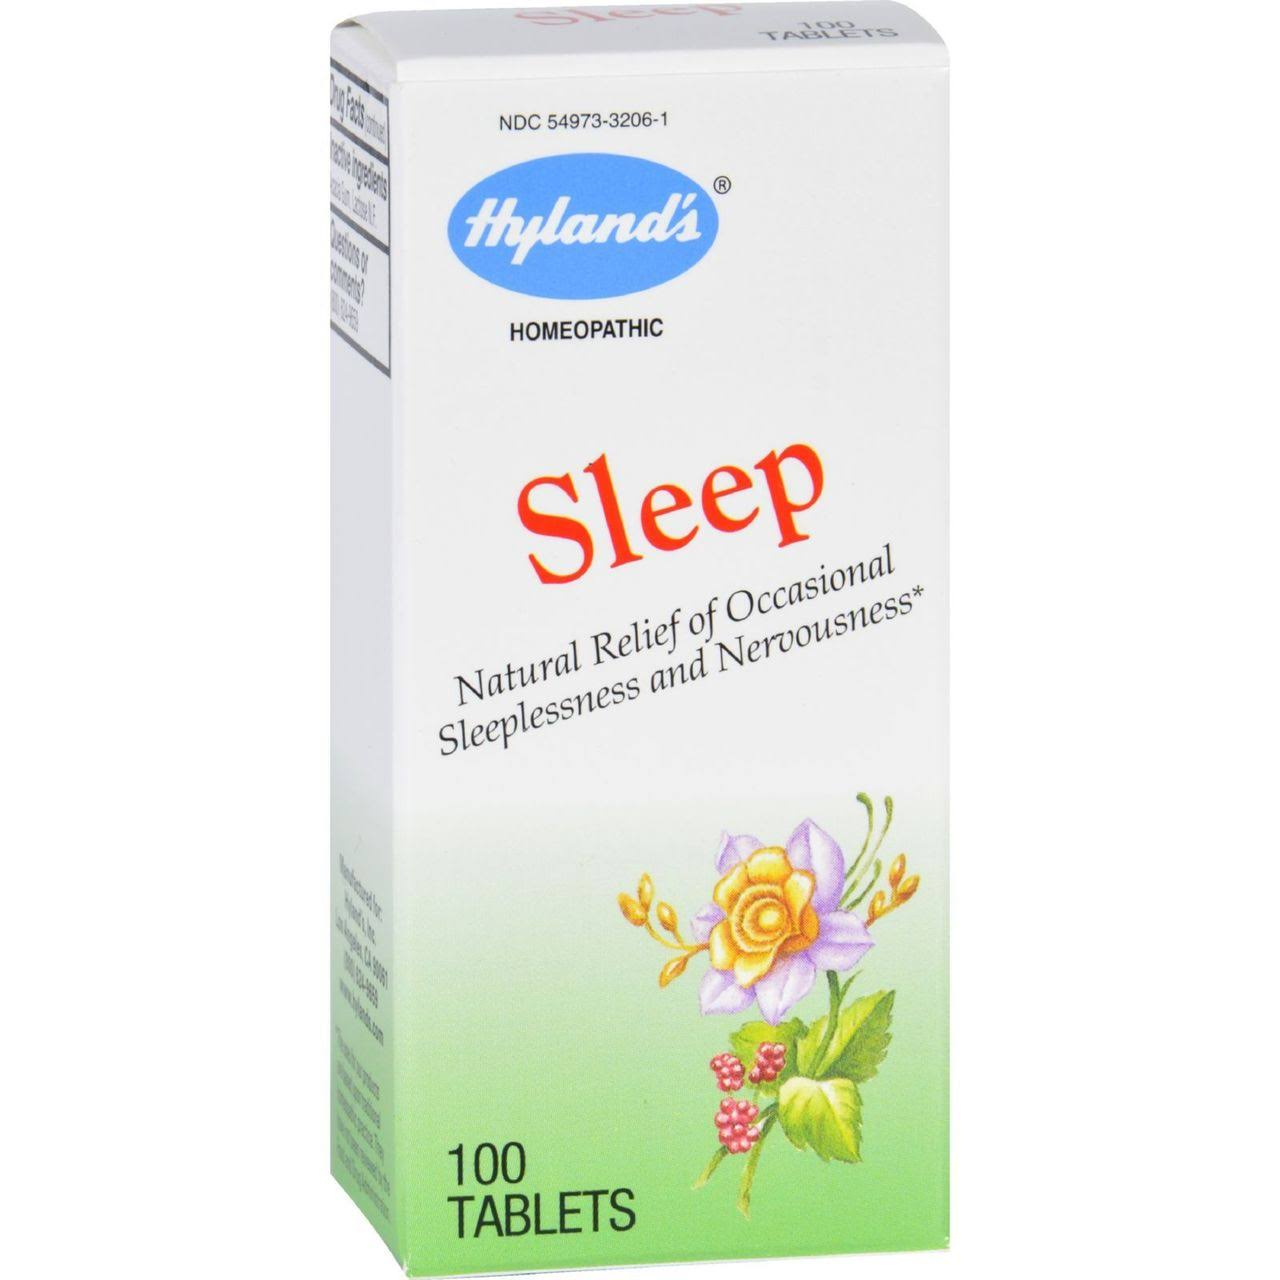 Hyland's Sleep Tablets - 100 count